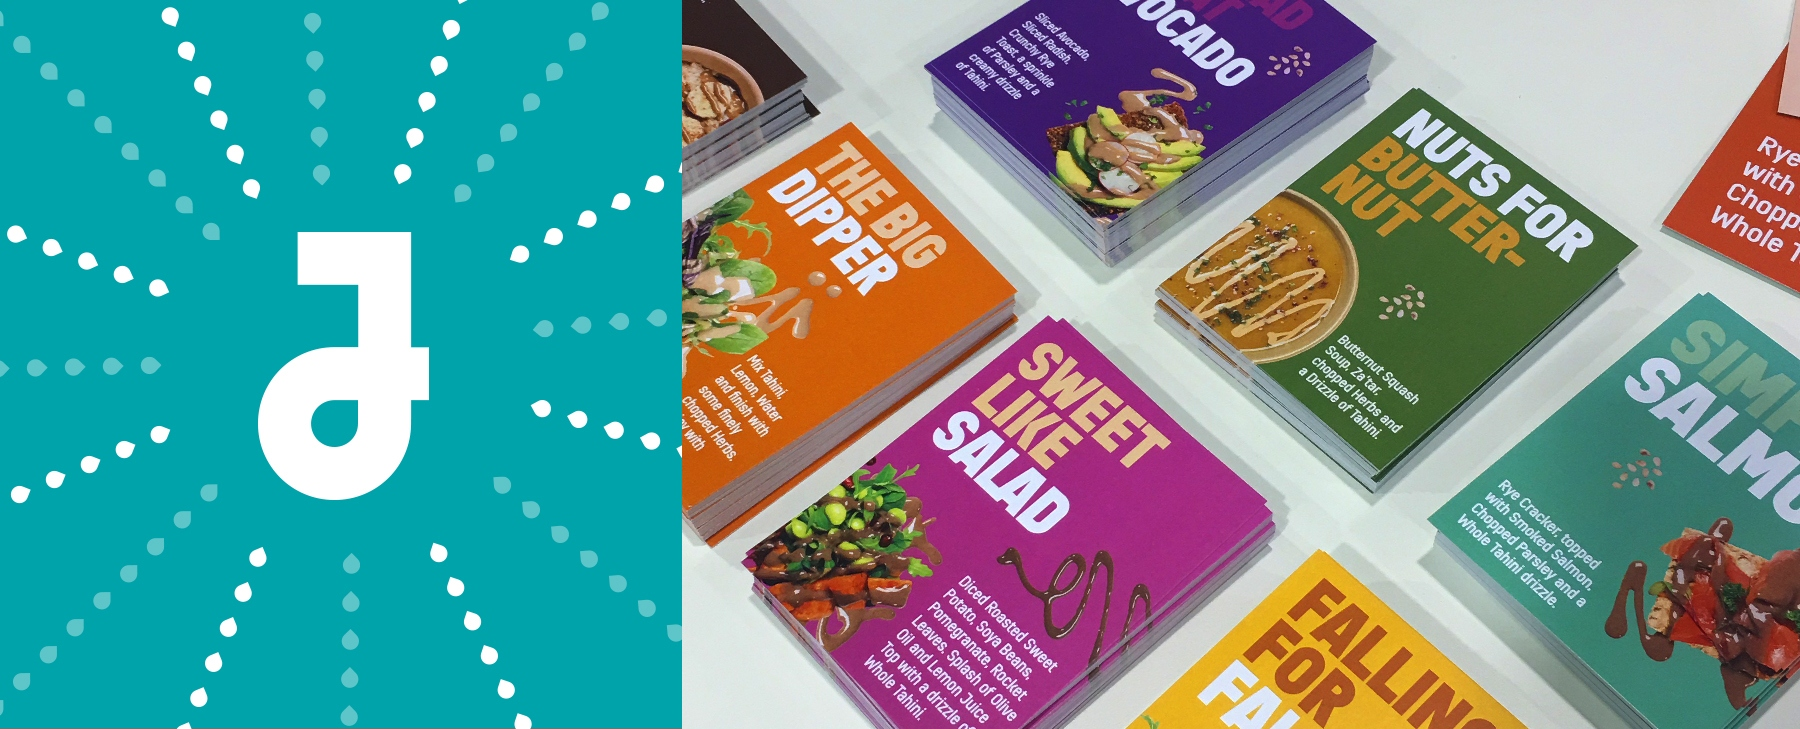 Julia's J logo with sesame seed feature and photograph of A5 branded leaflets on a table